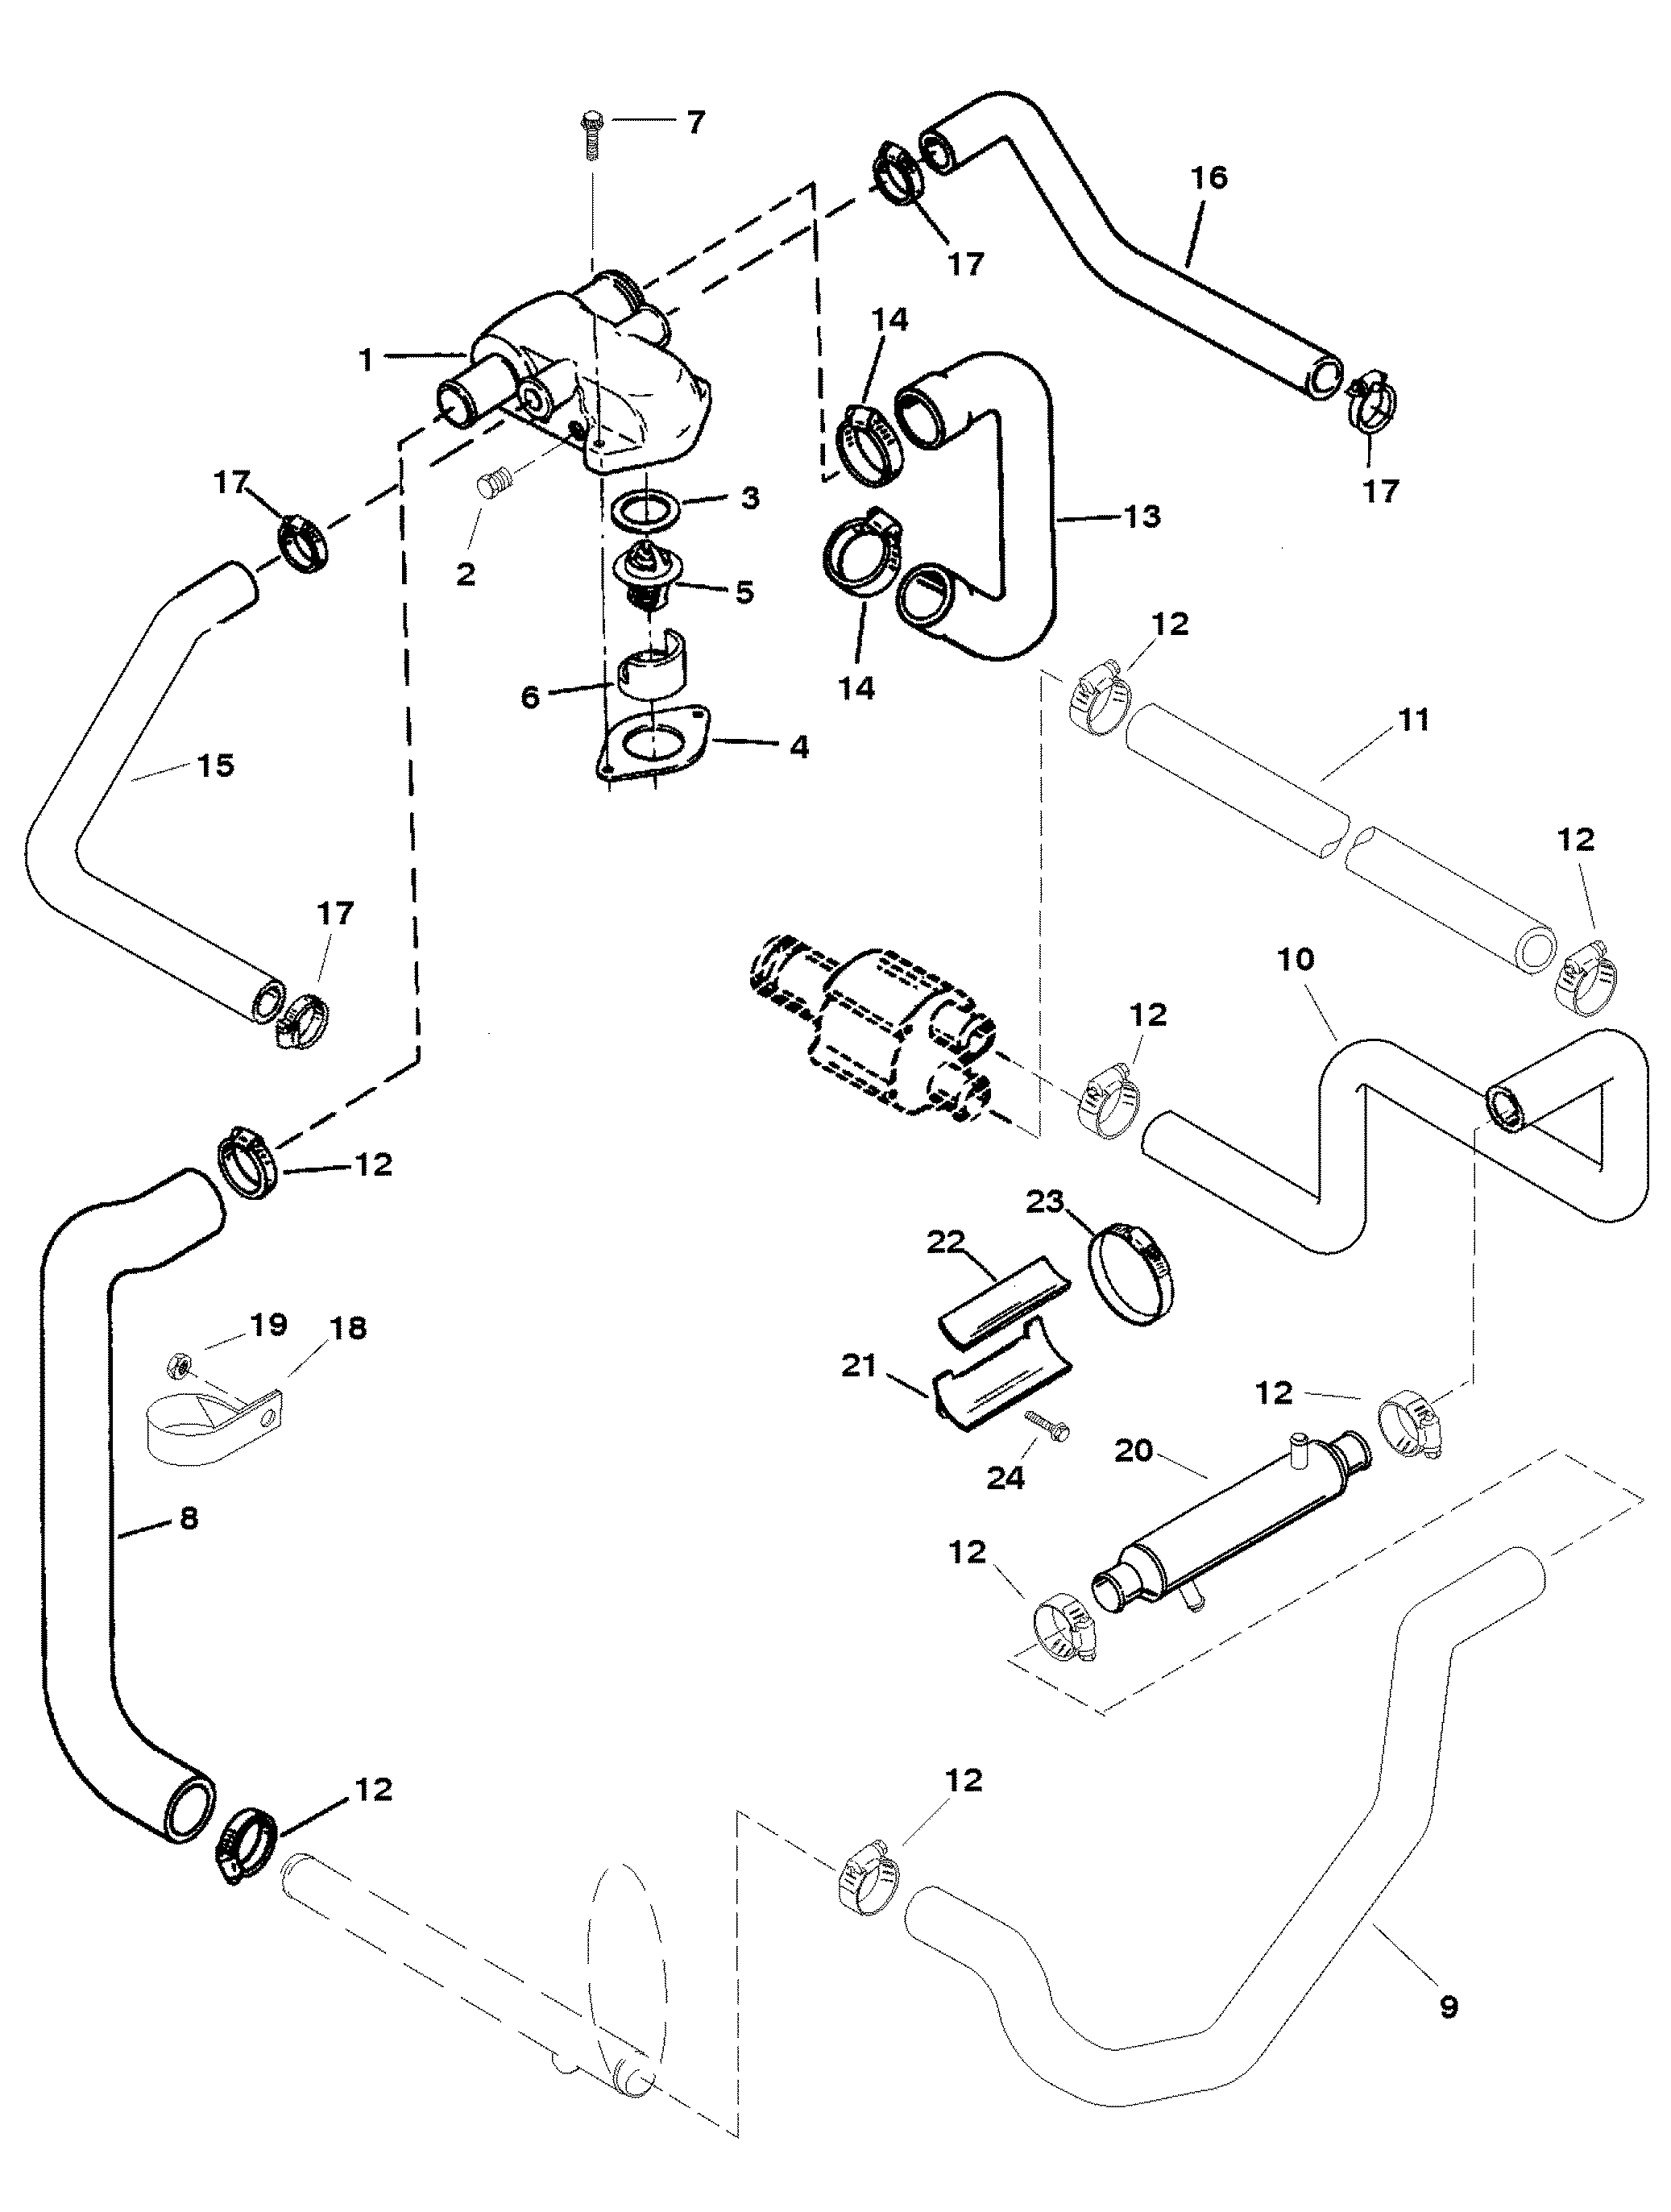 2014 ford focus fuel system diagram mercruiser fuel system diagram standard cooling system for mercruiser 350 mag mpi bravo